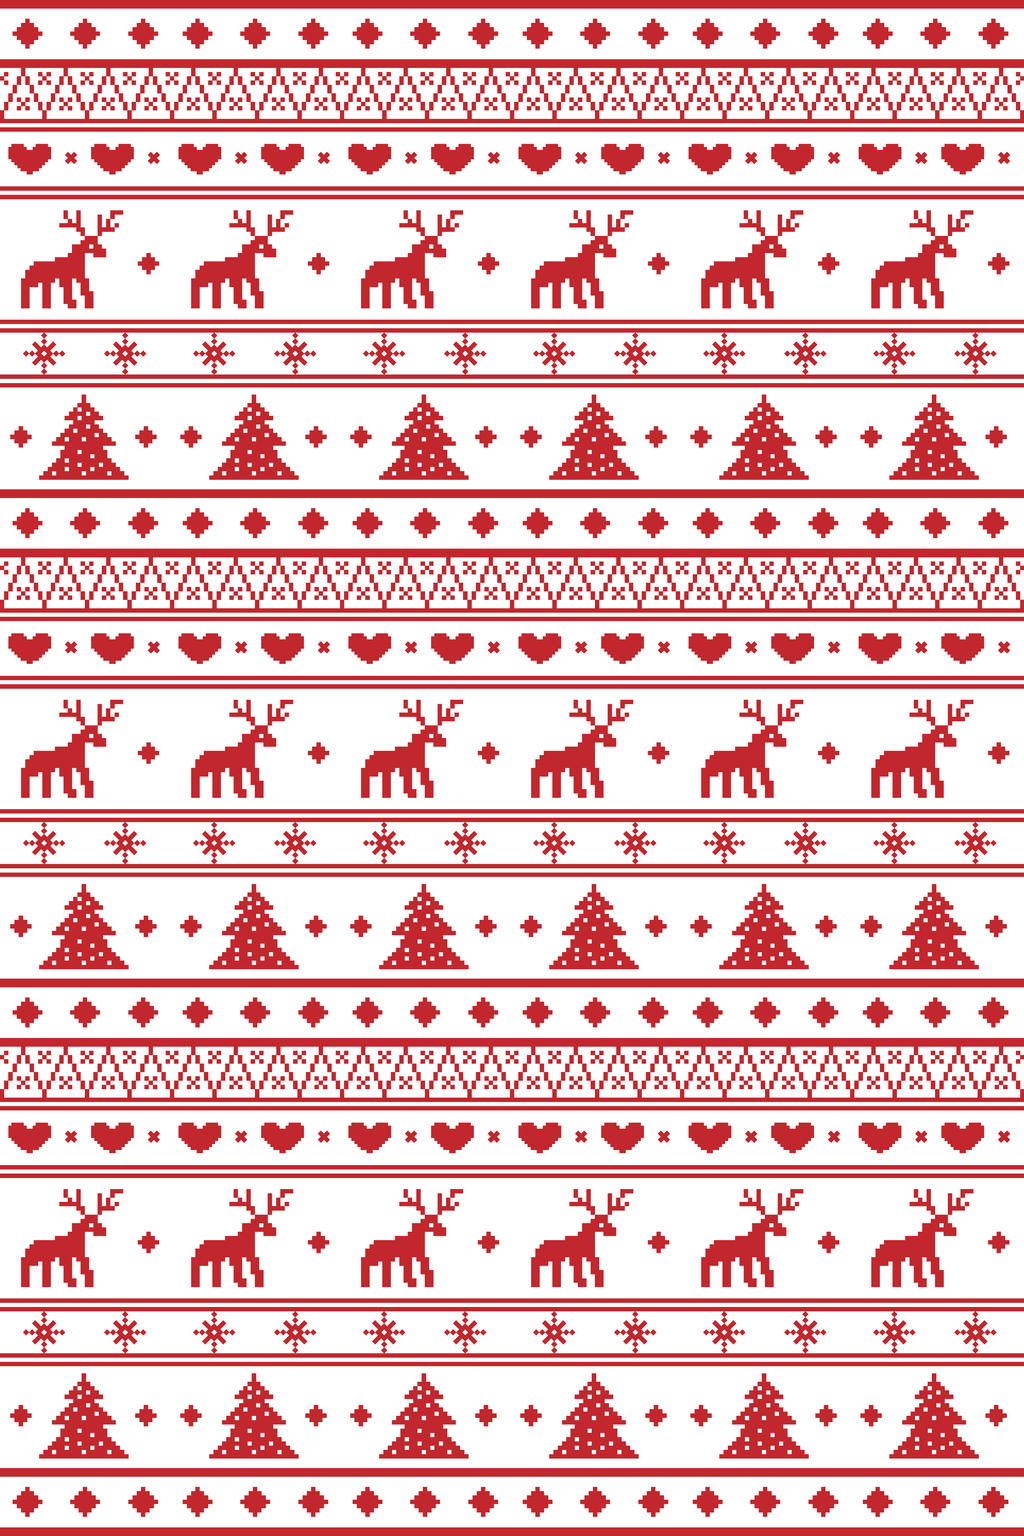 Christmas Pixel Pattern by jamieemm92 on DeviantArt